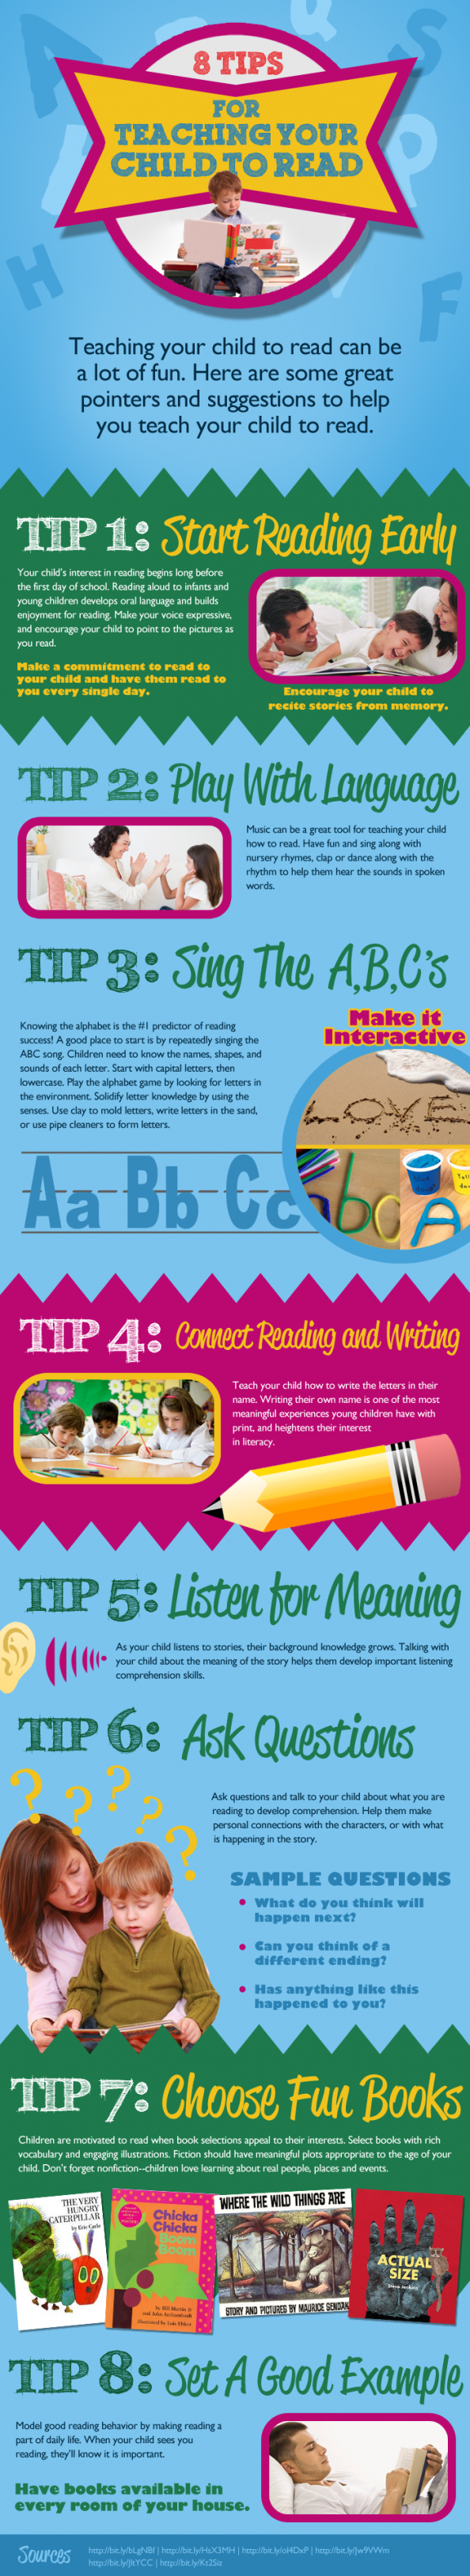 8 Tips for Teaching your Child  to Read Infographic